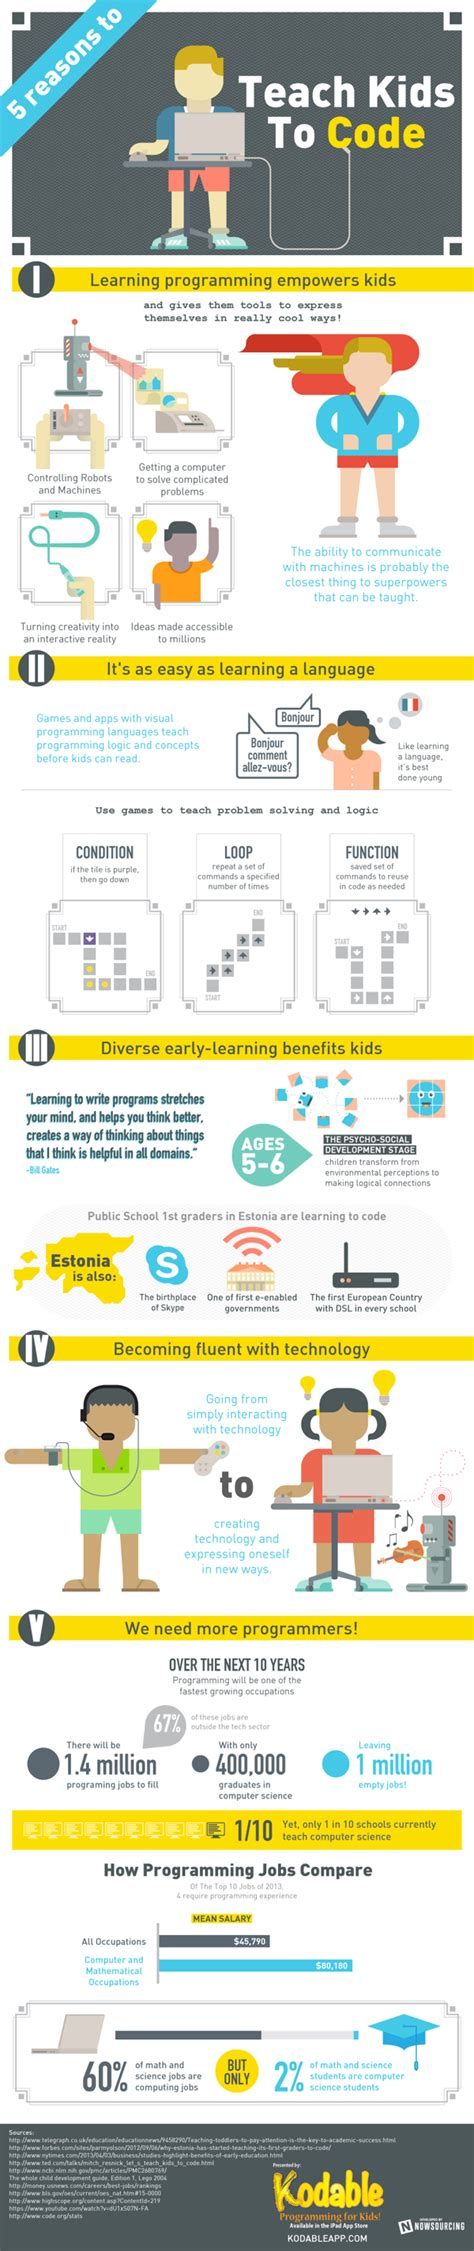 5 Reasons to Teach Kids to Code by NowSourcing , via